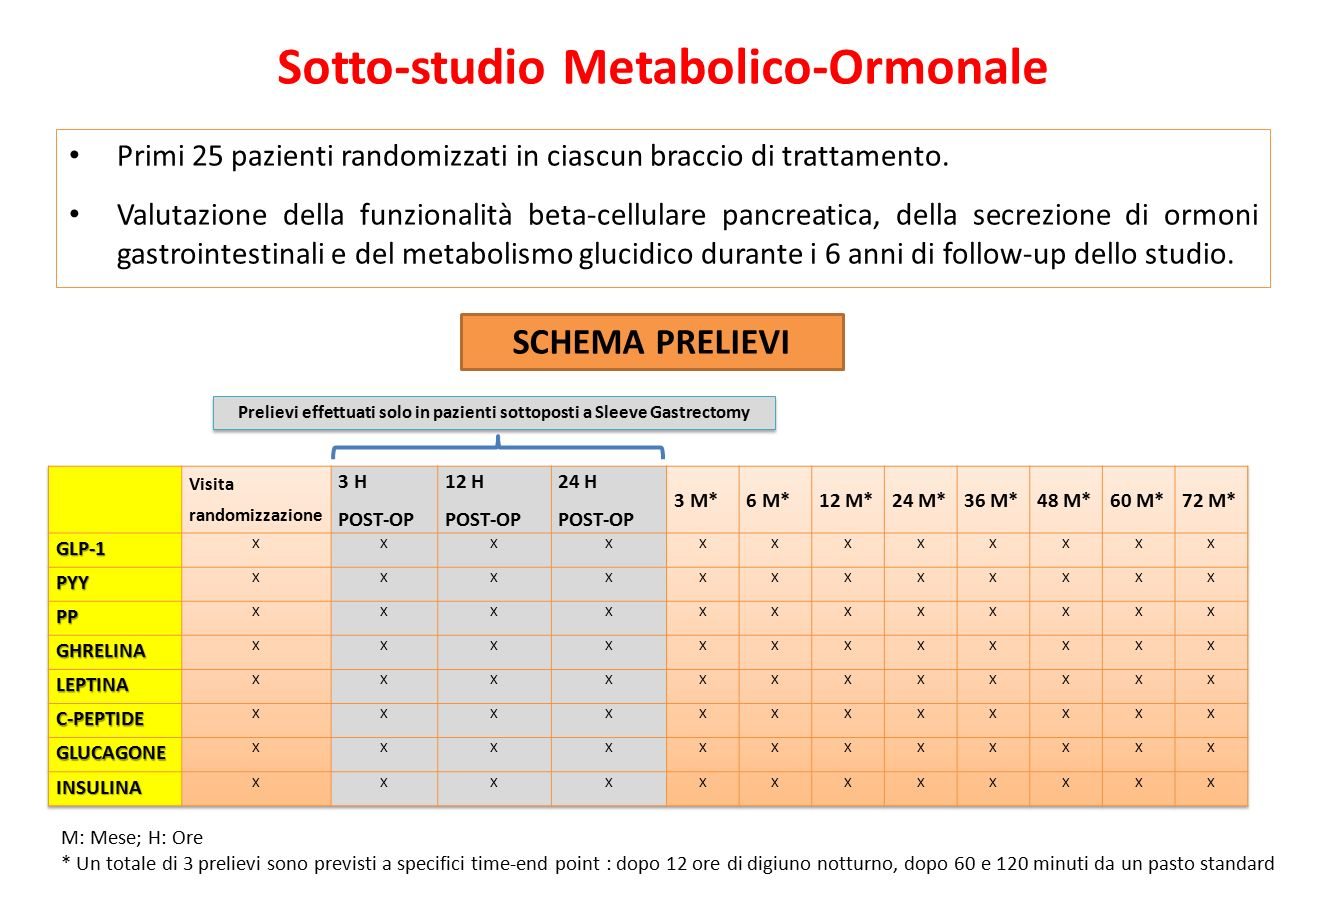 Sotto-studio Metabolico-Ormonale